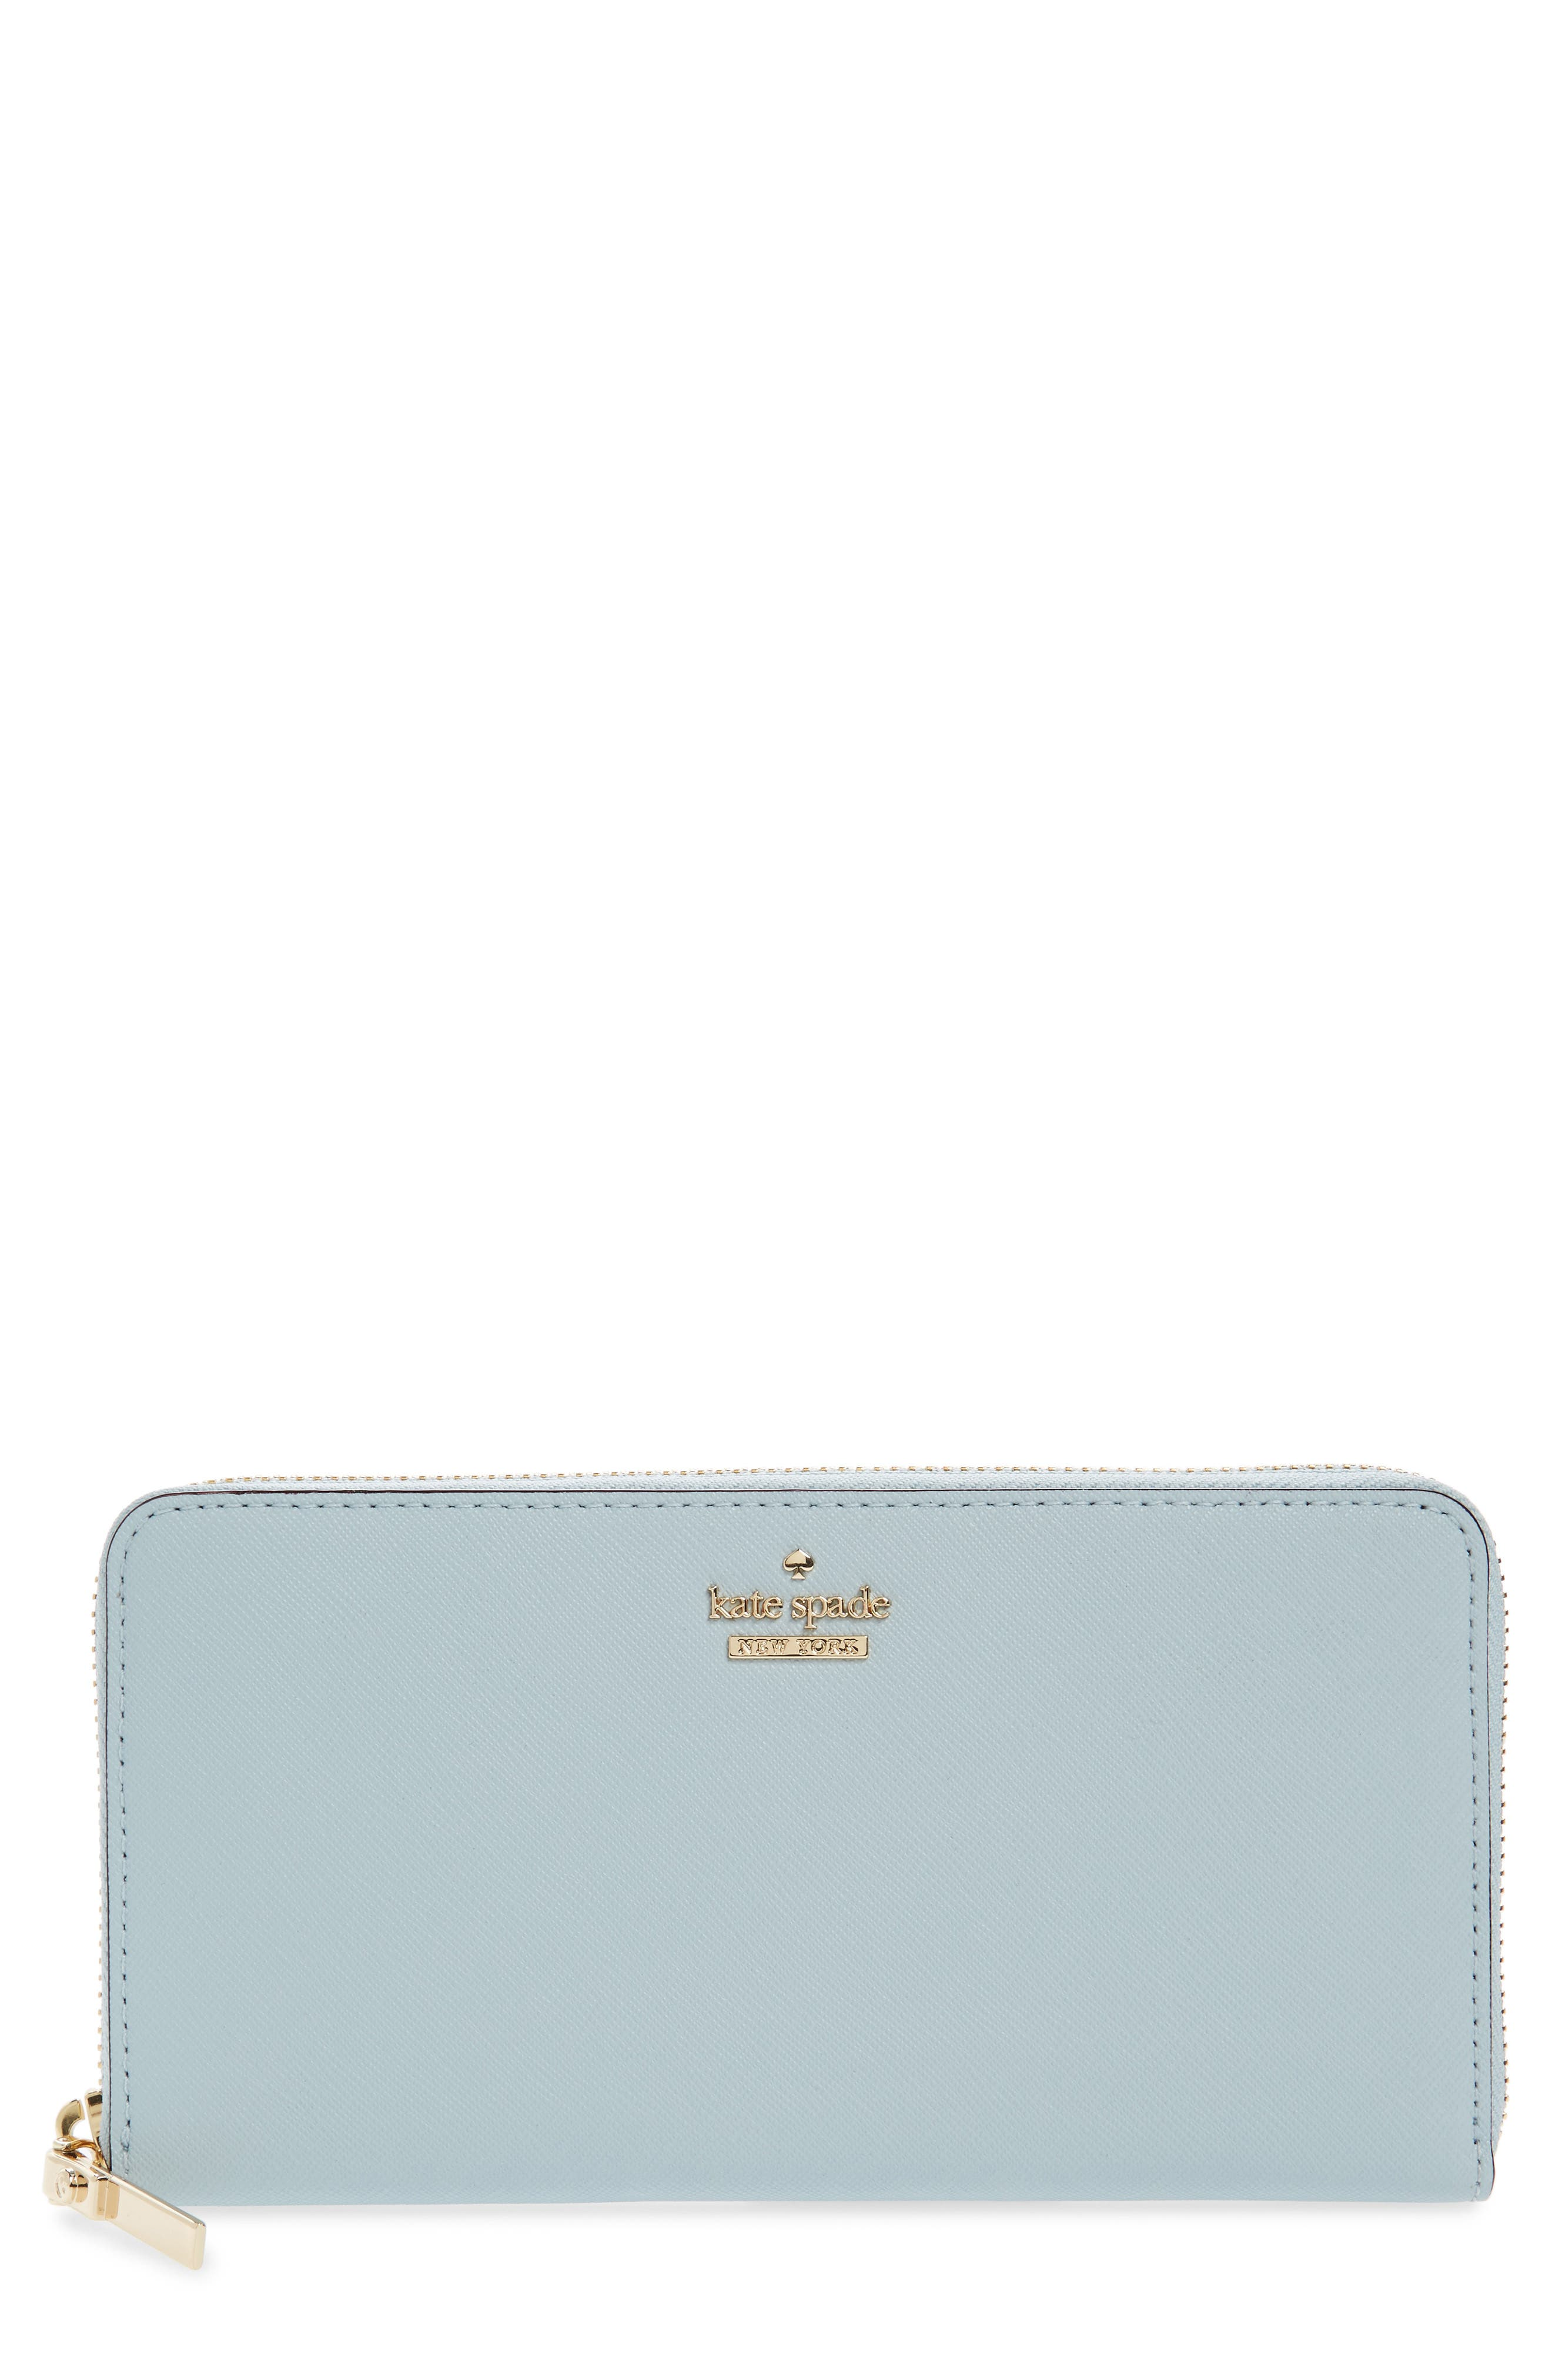 Alternate Image 1 Selected - kate spade new york 'cameron street - lacey' leather wallet